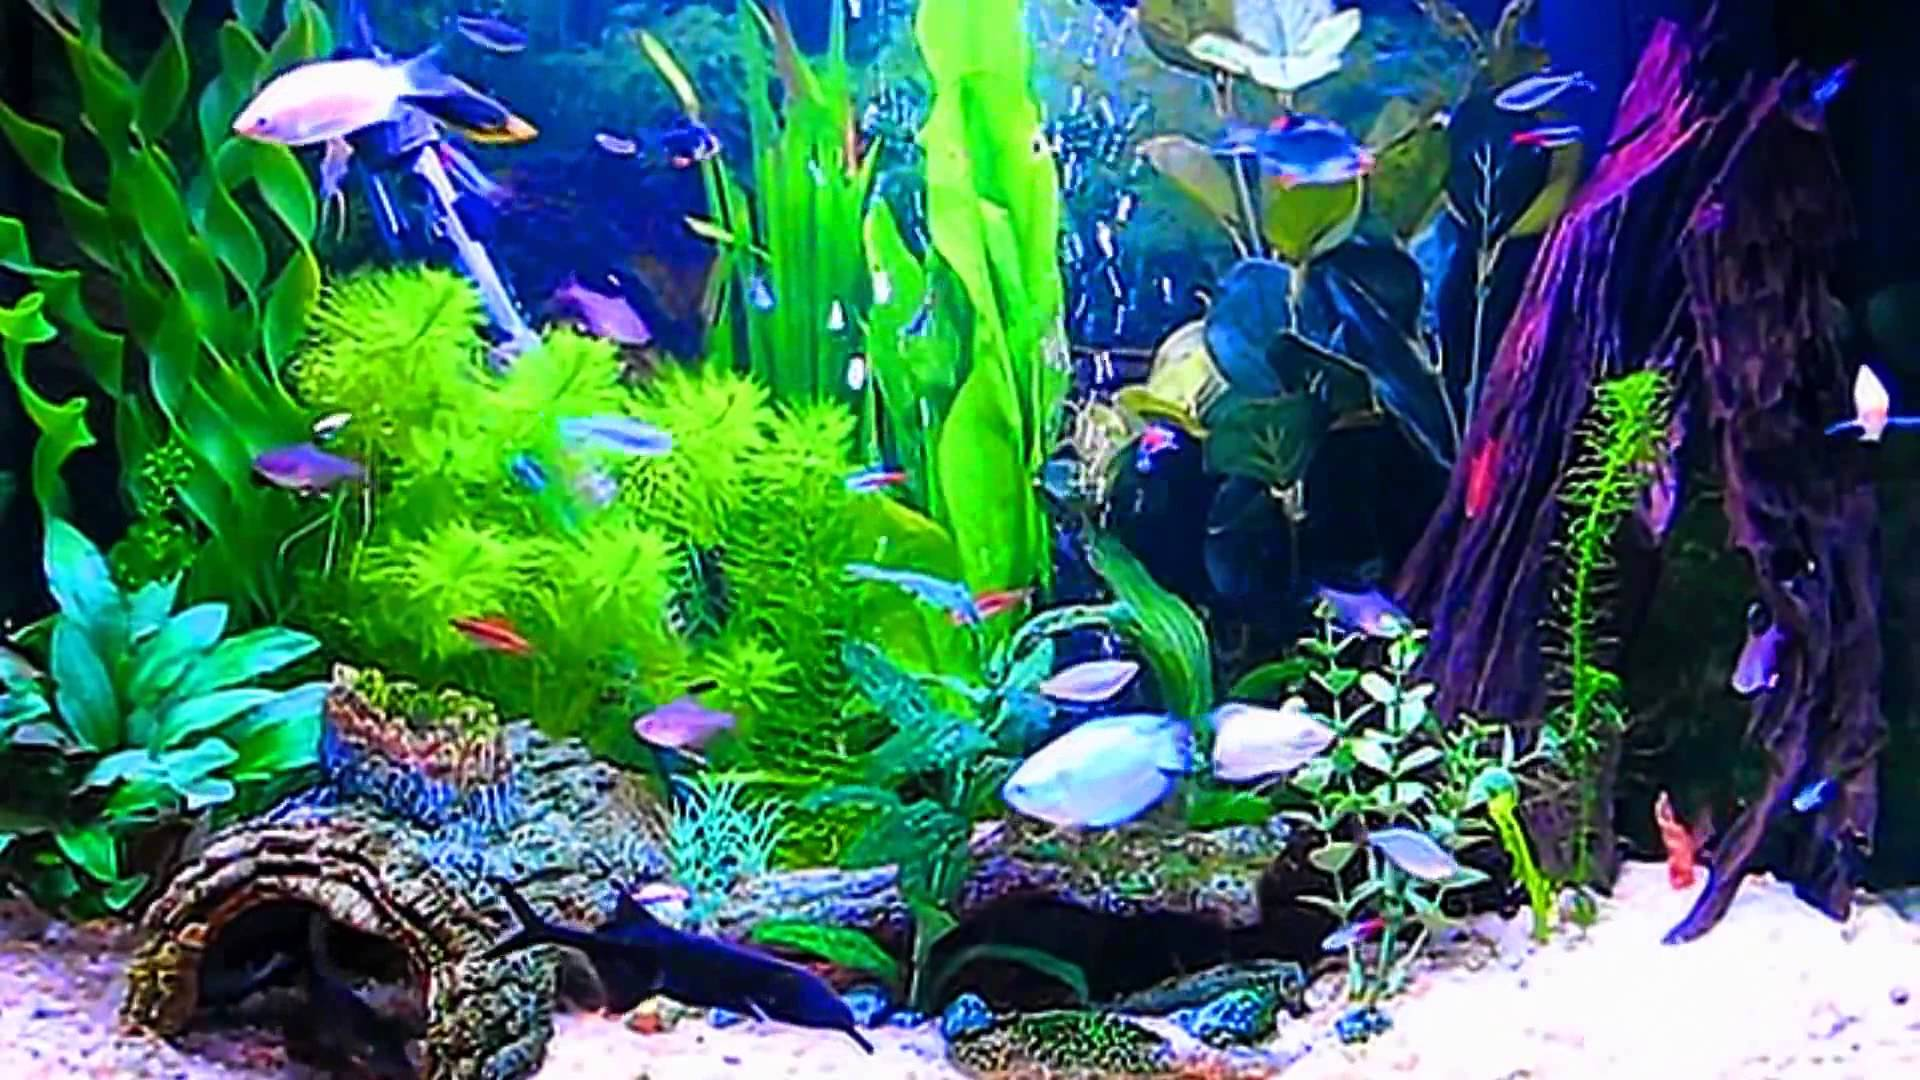 Aquarium Hd 1080p Wallpaper Wallpapersafari